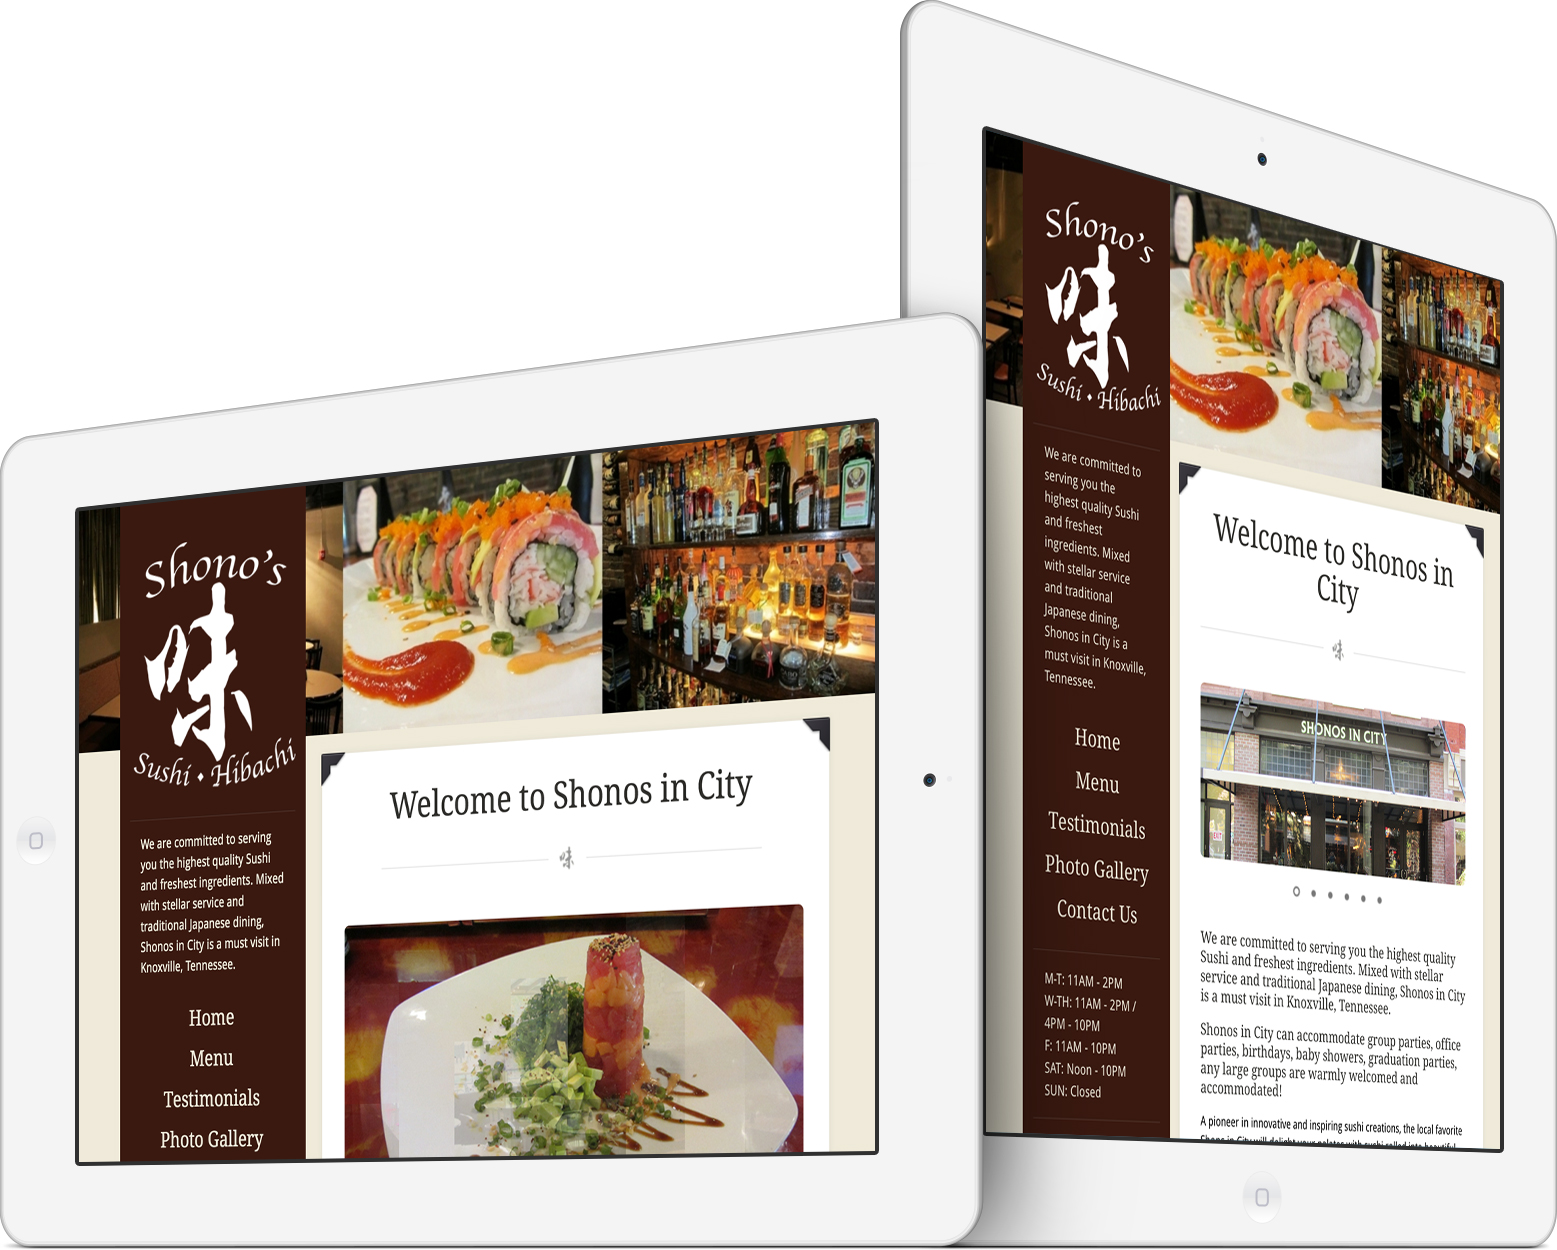 Shonos in City on an iPad